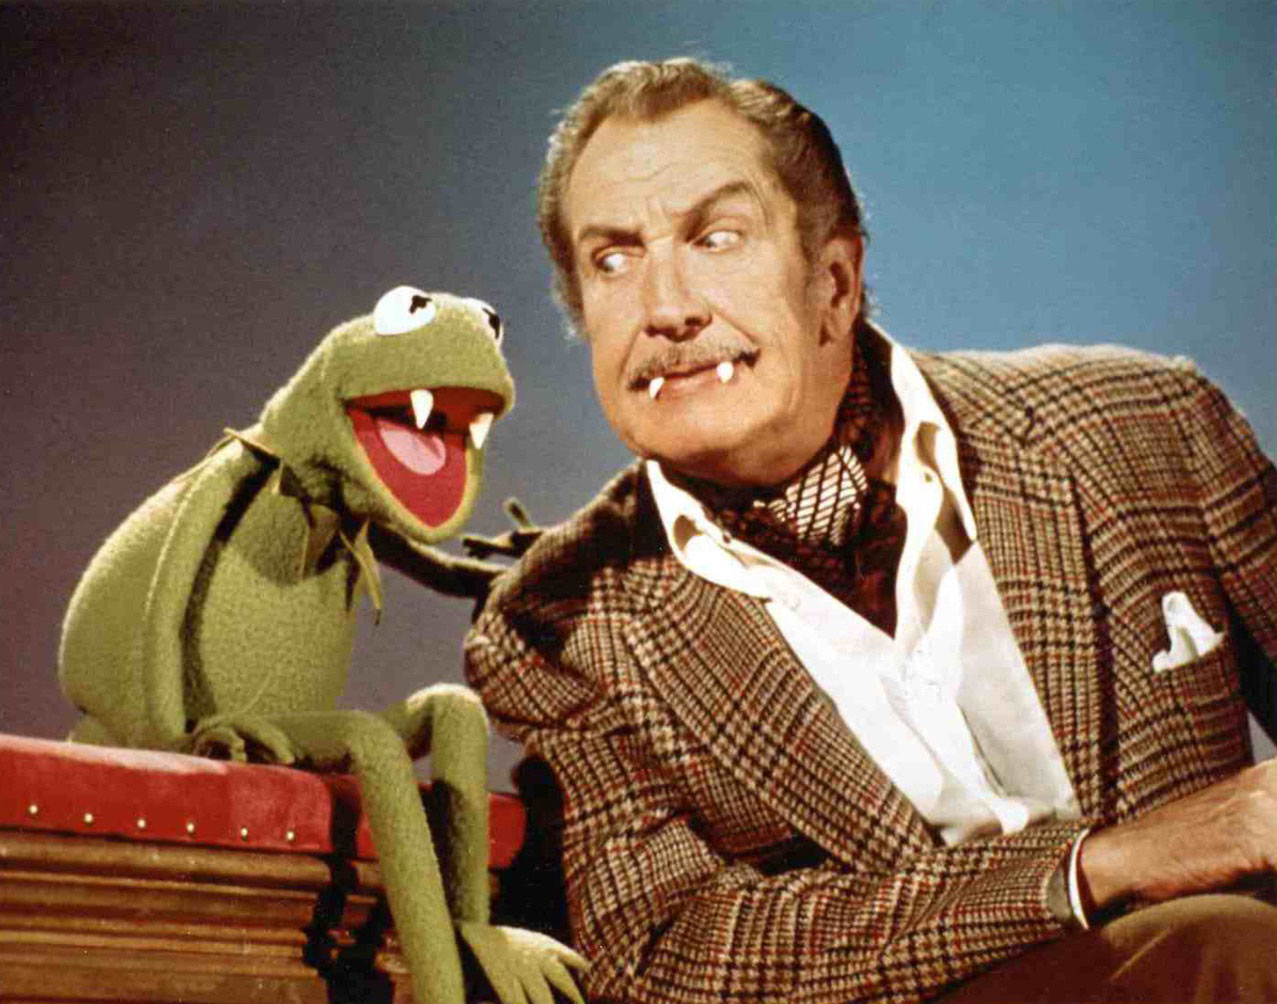 """The Muppet Show"""" Vincent Price (TV Episode 1977) - IMDb"""